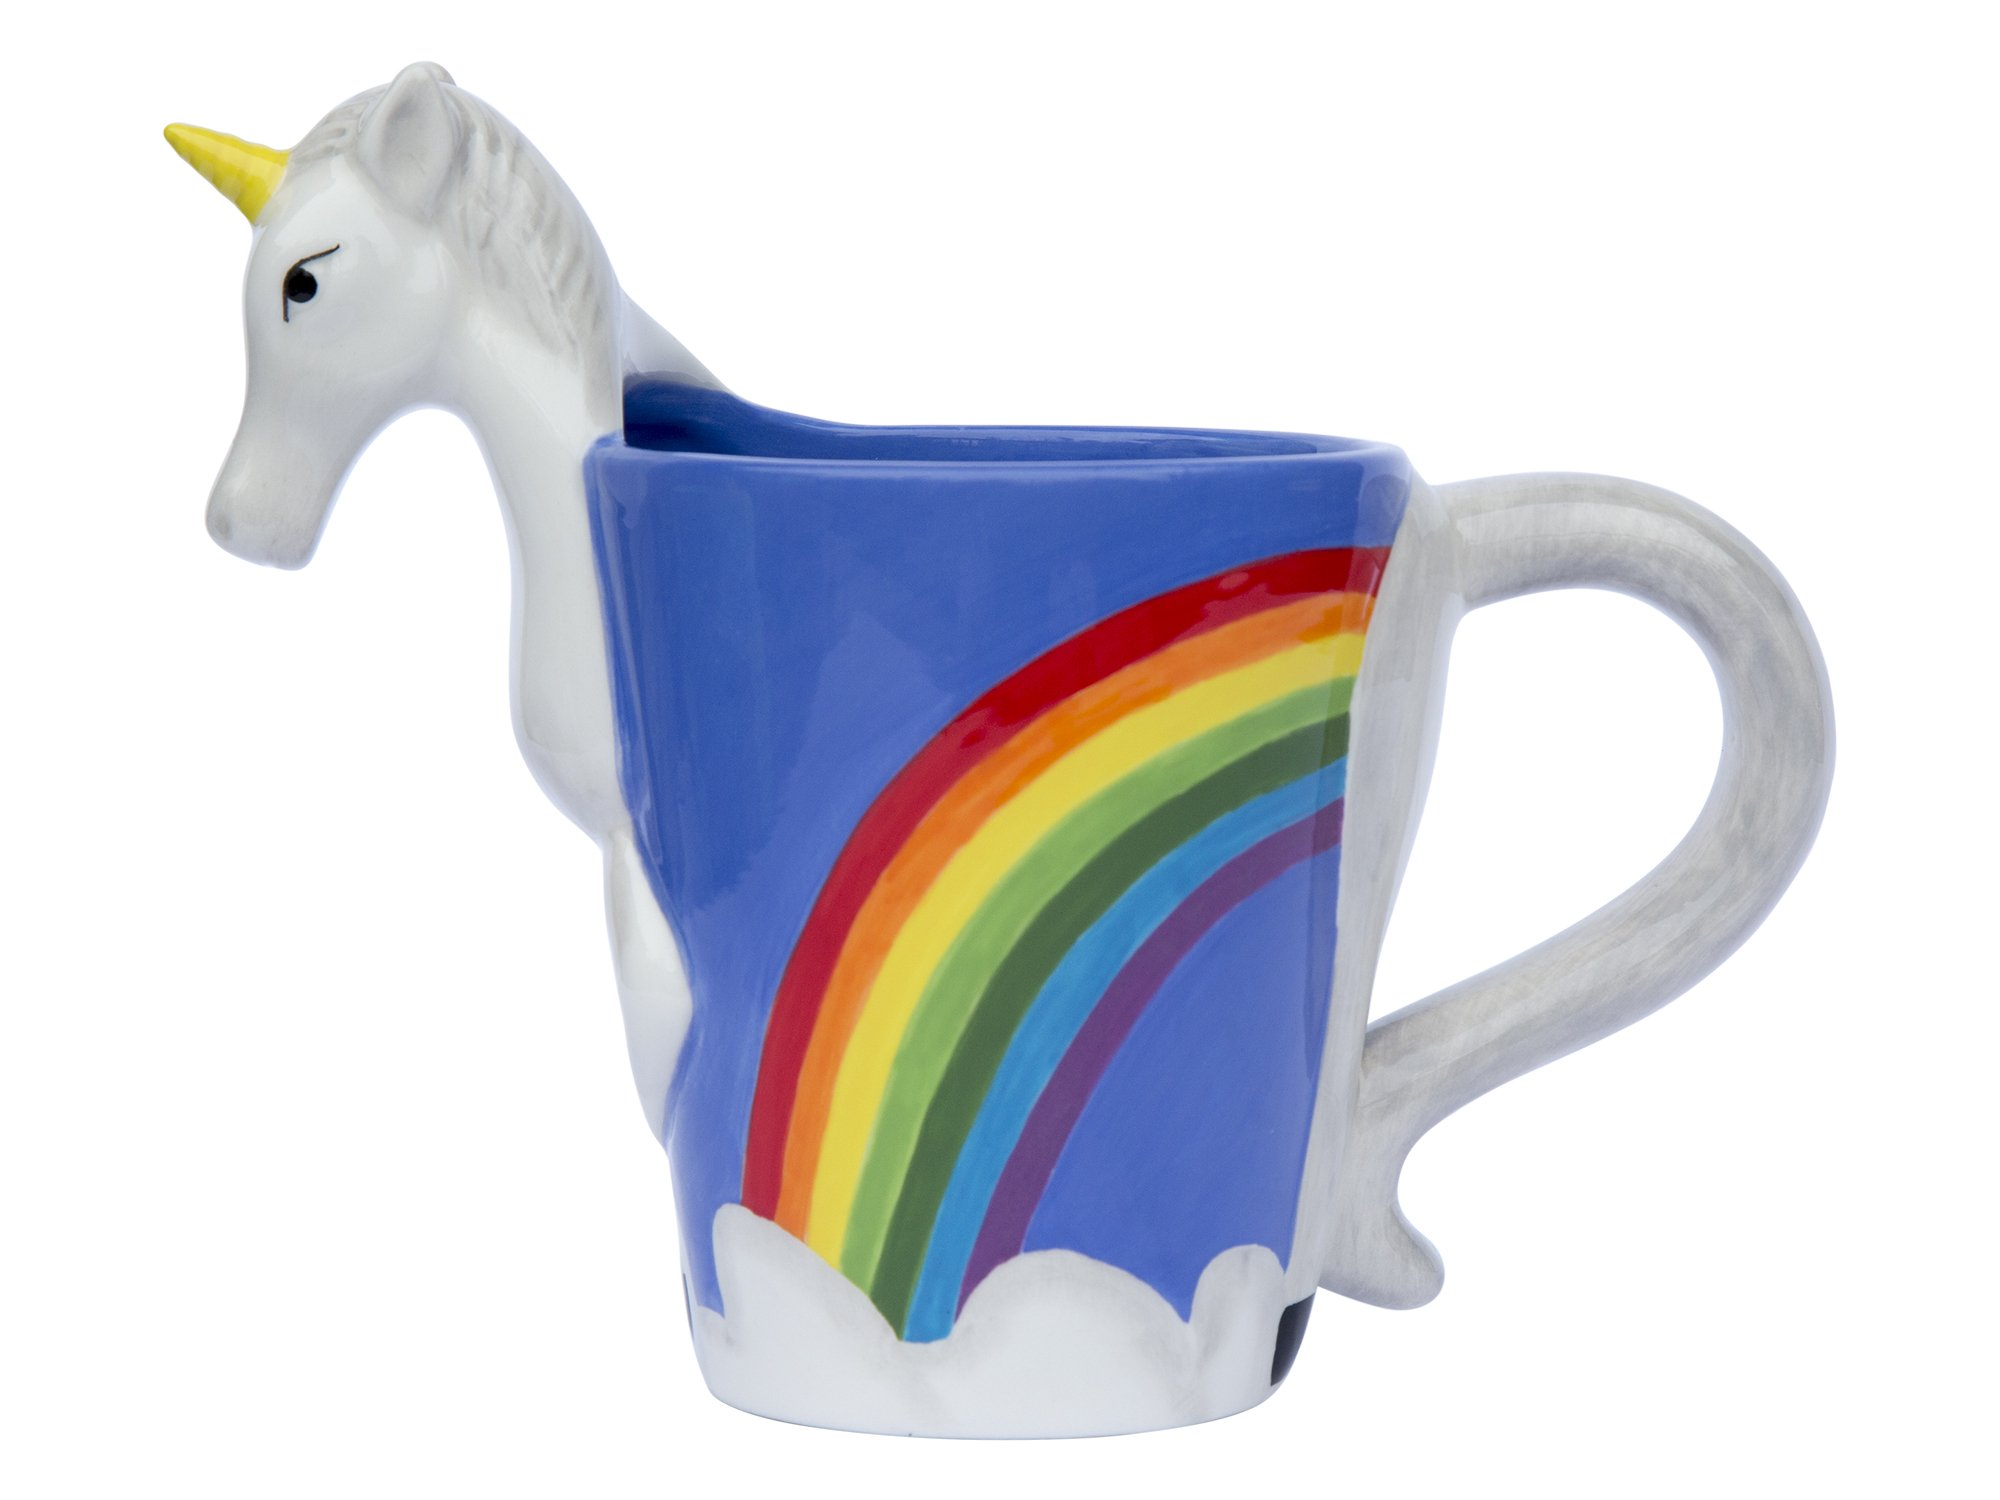 Ceramic Unicorn Coffee Mug w/Rainbow by Comfify - Sweet & Fantastical 3D Unicorn Design w/Magical Rainbow - Unique… 3